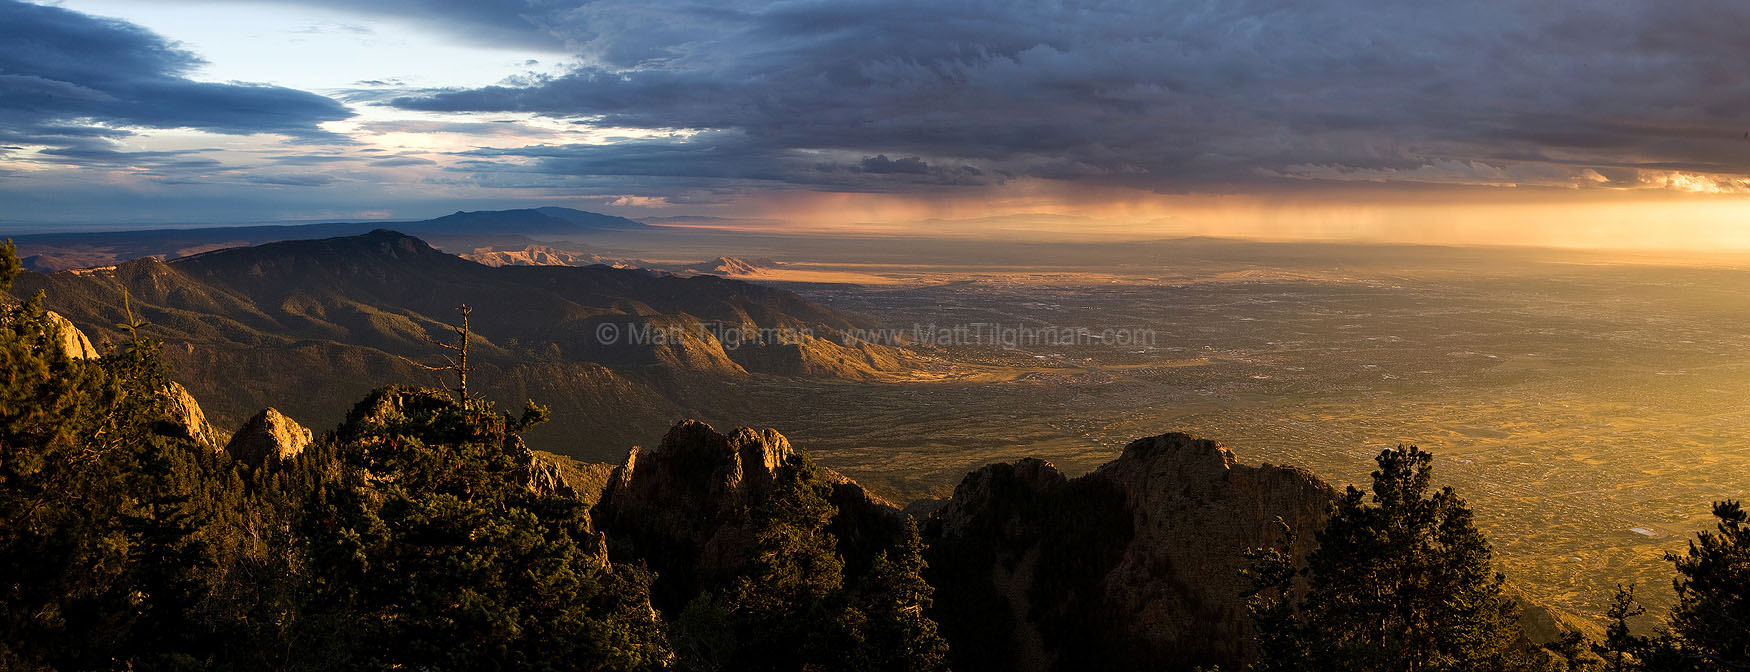 Fine art stock photograph from Albuquerque, New Mexico. A beautiful sunset clashes with a powerful monsoon storm over Albuquerque,, as seen from atop the Sandia Mountains.